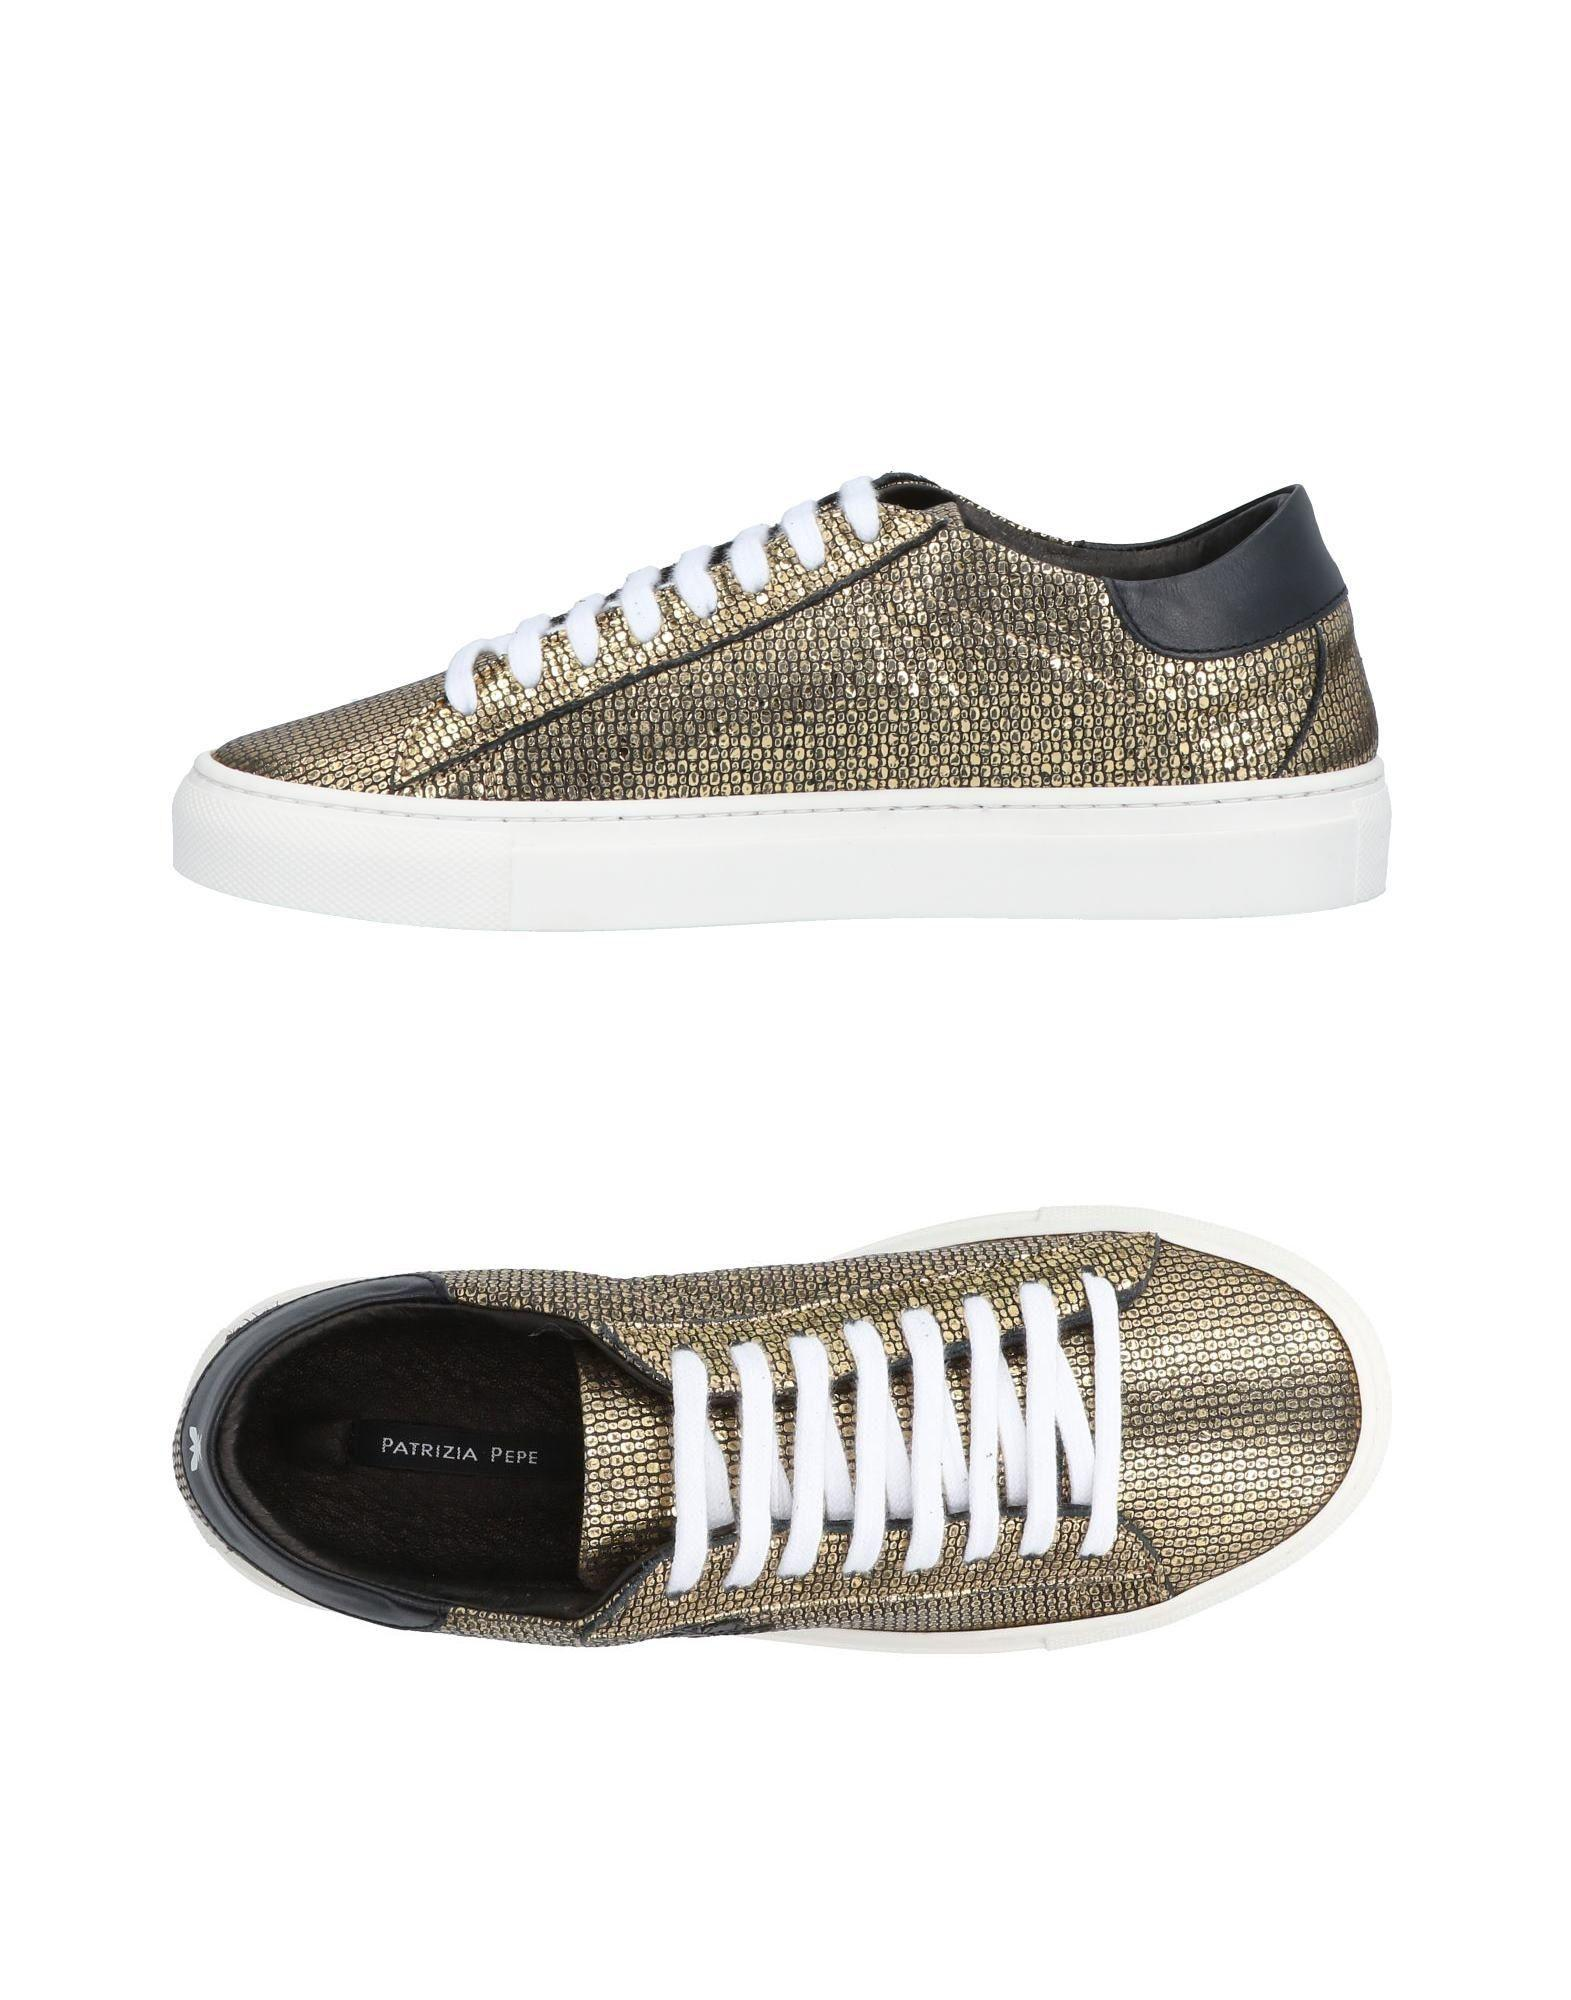 FOOTWEAR - Low-tops & sneakers Patrizia Pepe dWIG3phB